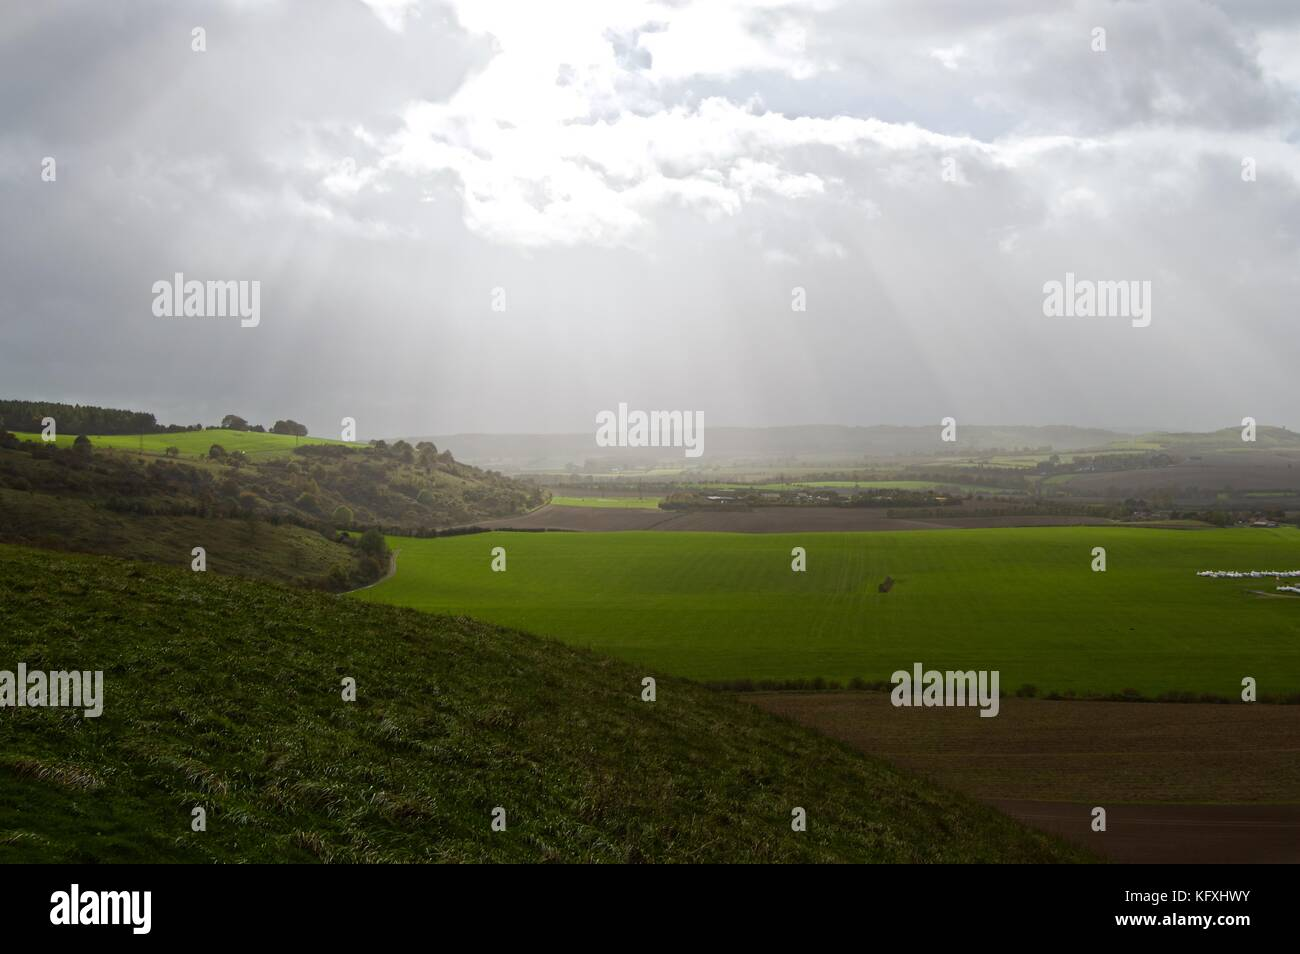 Sun breaking through the clouds on a windy October day on Dunstable Downs, view of fields, Bedfordshire, UK Stock Photo